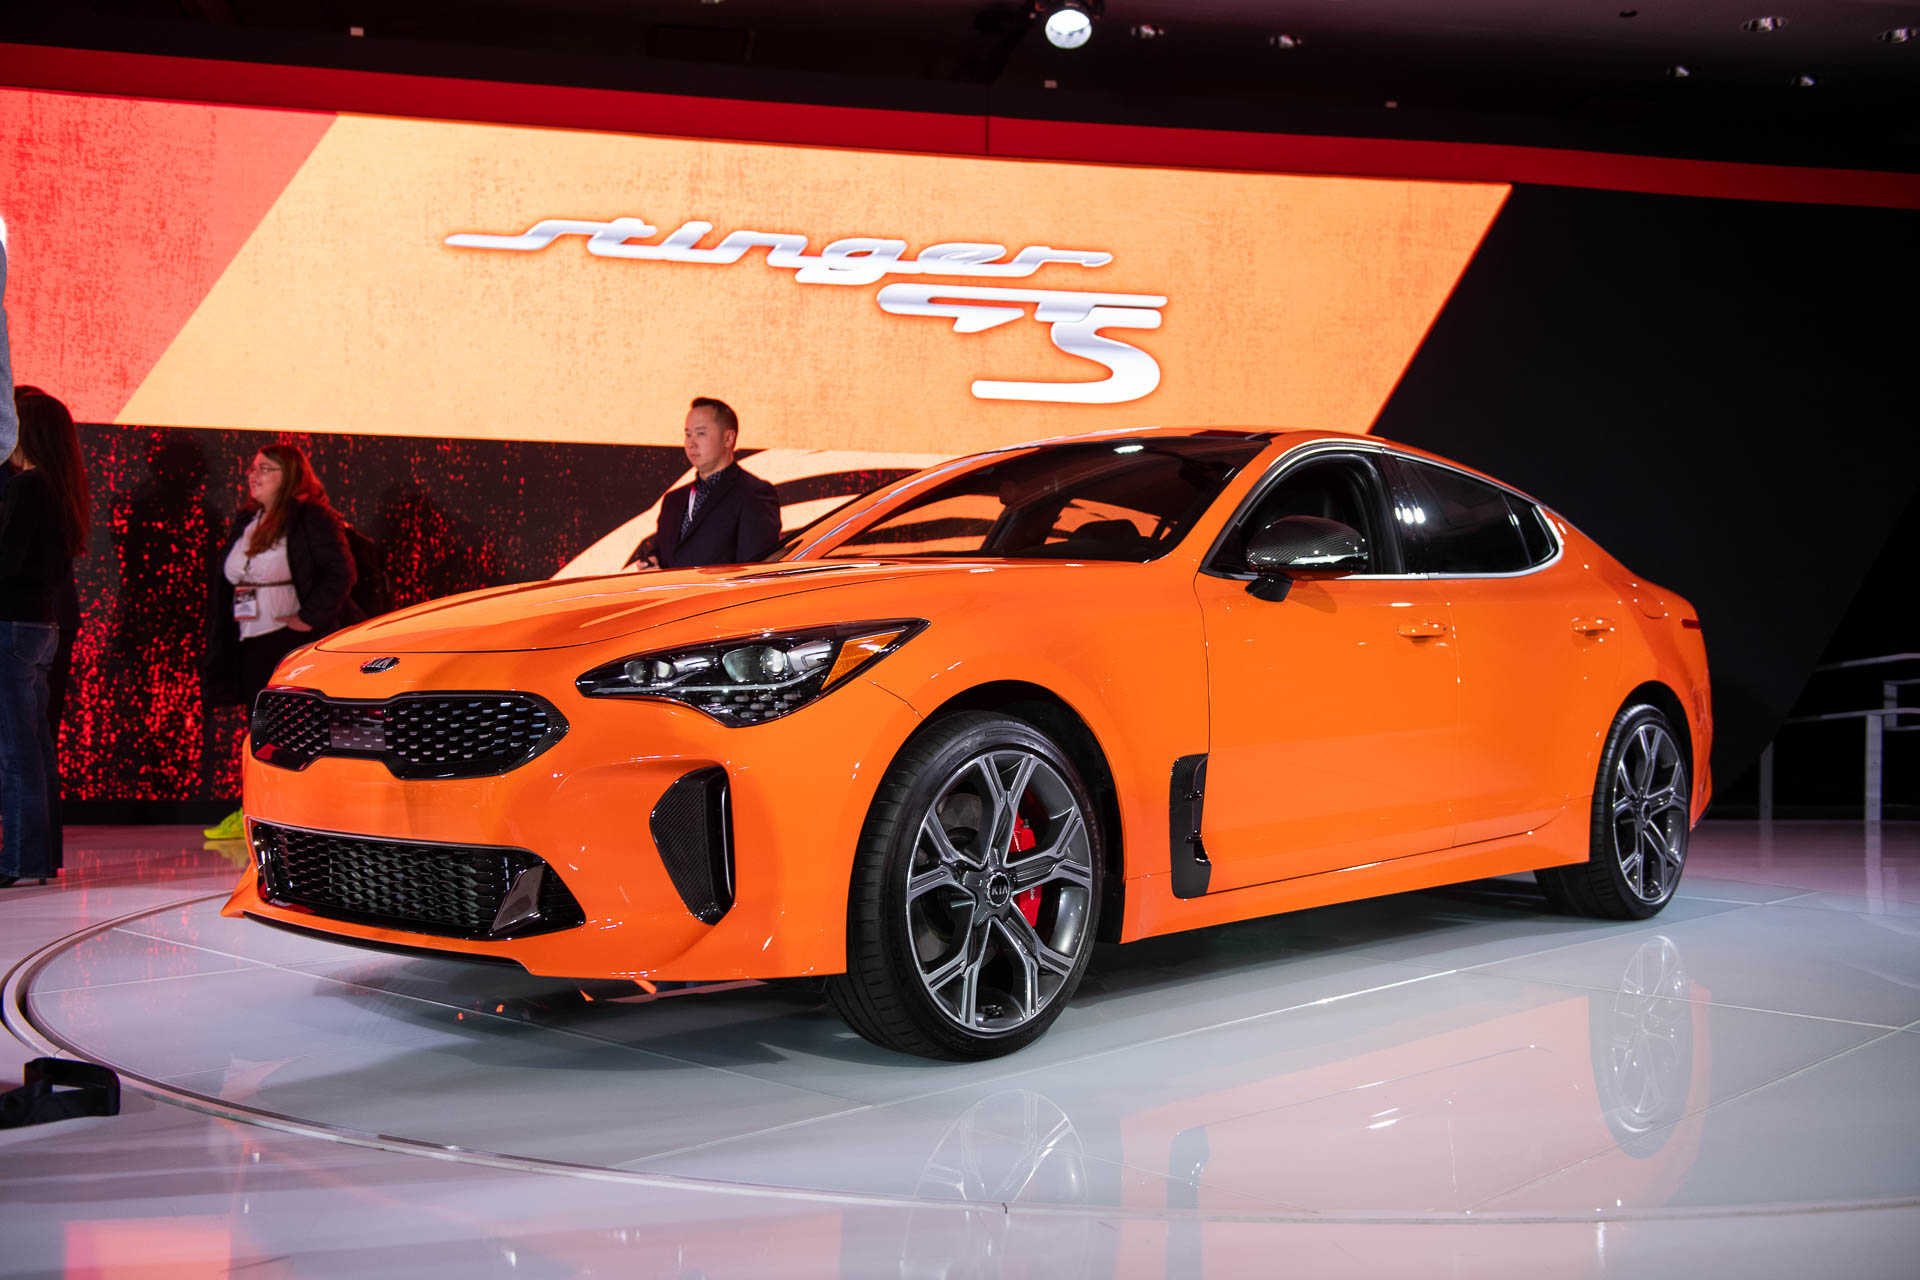 2020 Kia Stinger Gts Coming To Punish More Tires With New Awd Hardware Drift Mode